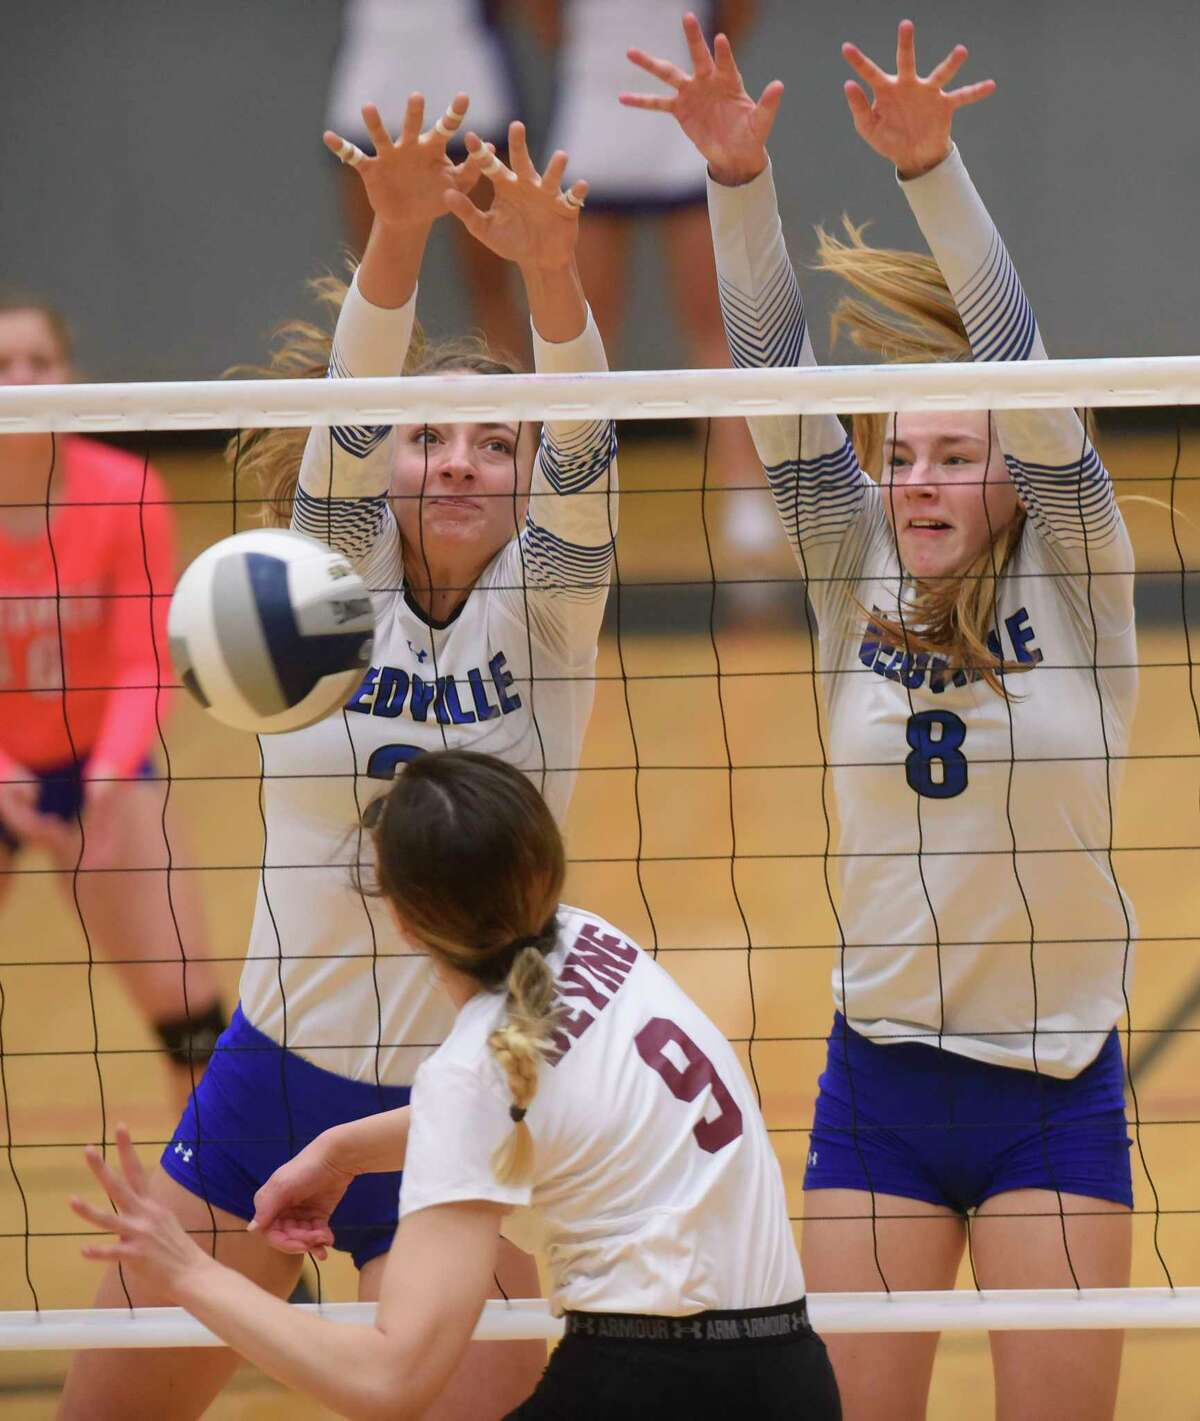 Needville's Sydney Sacra, left, and Madison Schultz (8) of Needville block a spike by Devine's Caimee Fowler (9) during UIL Region IV-4A volleyball playoffs action at Littleton Gym on Friday, Nov. 10, 2017.